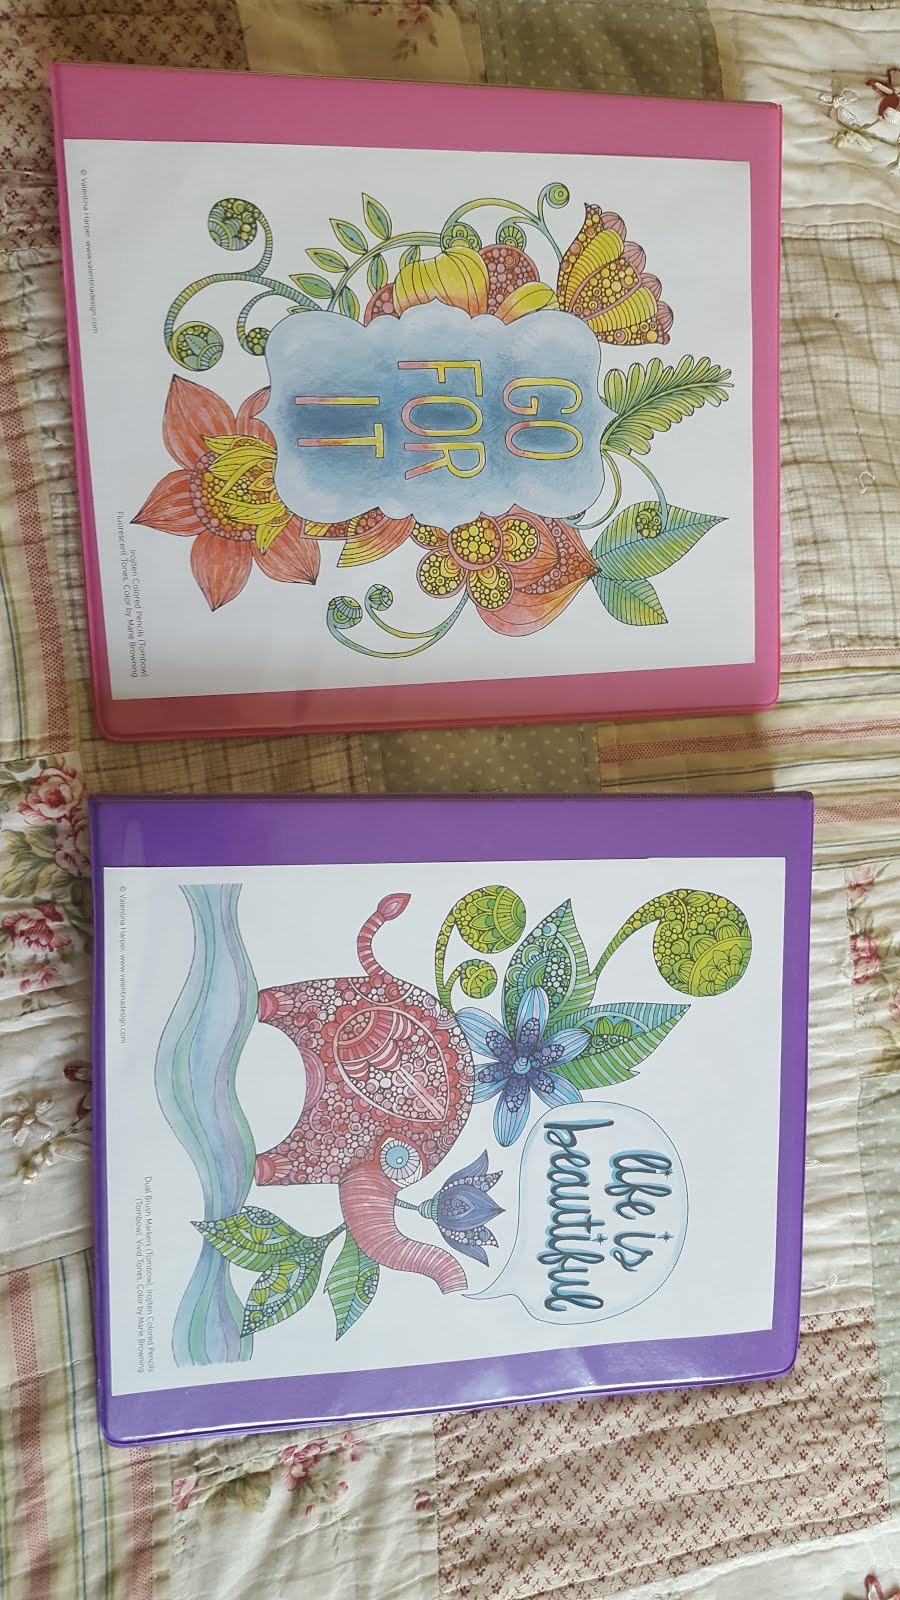 Homeschool Organizers I've created